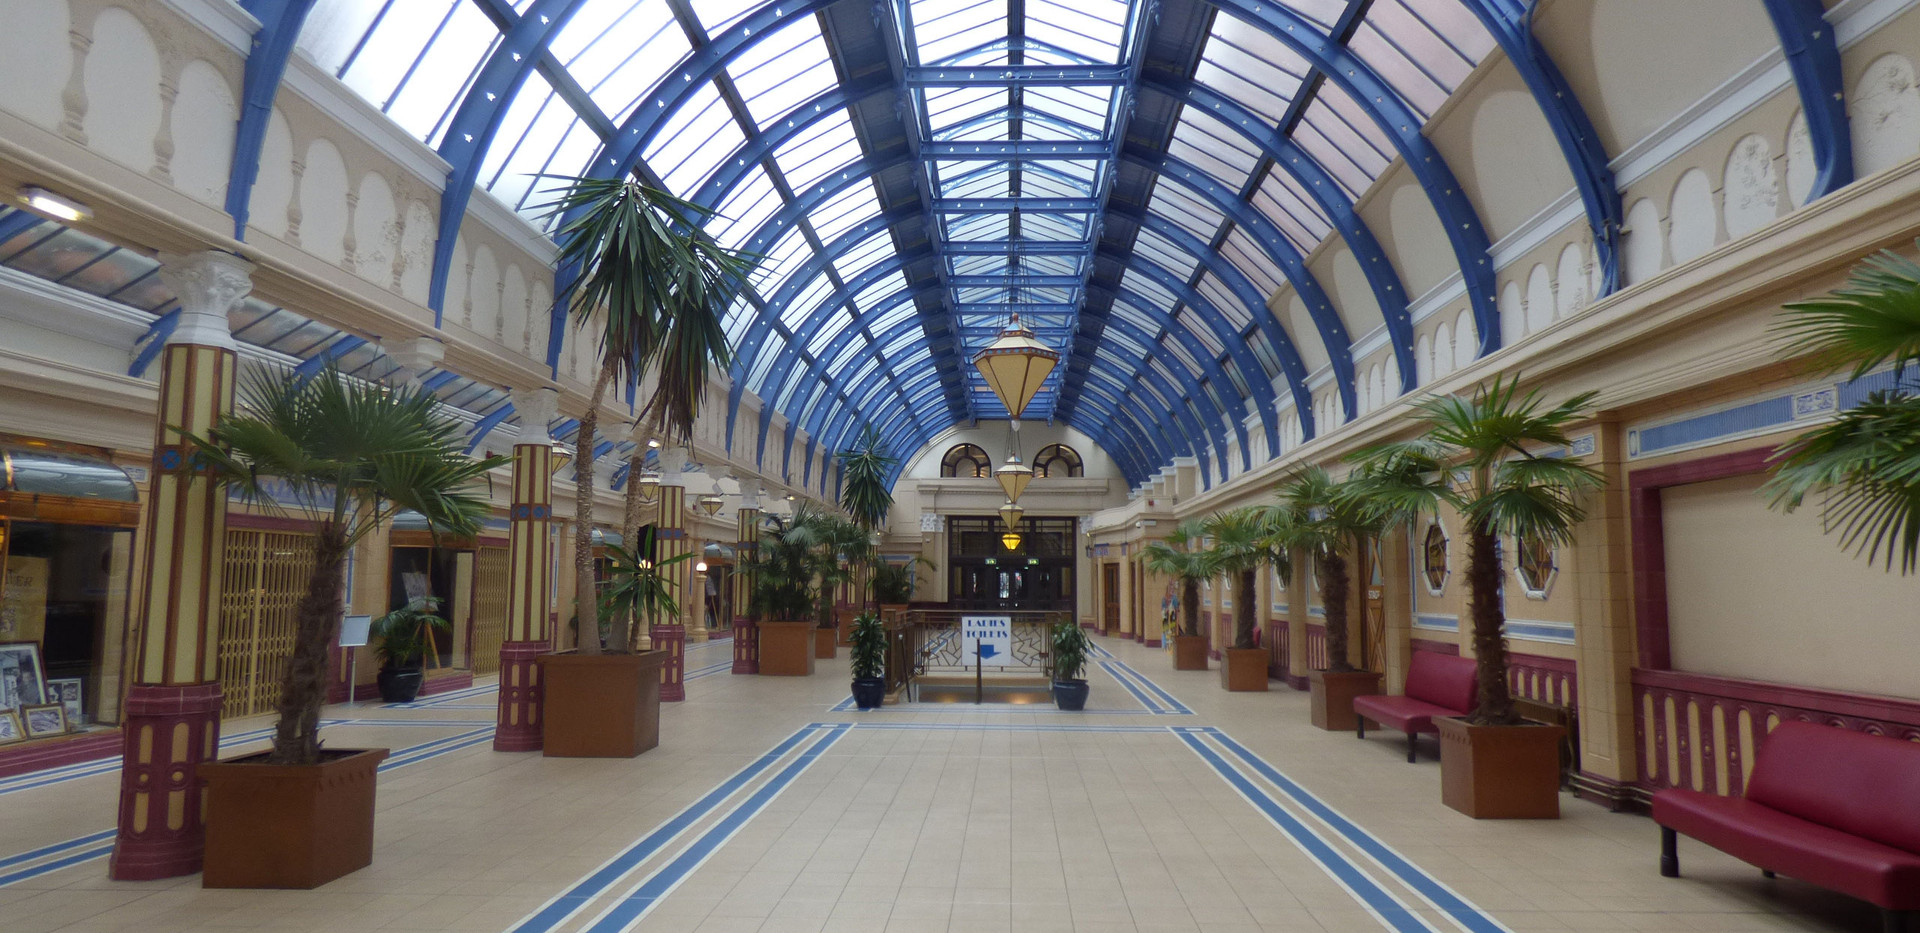 Blackpool Winter Gardens